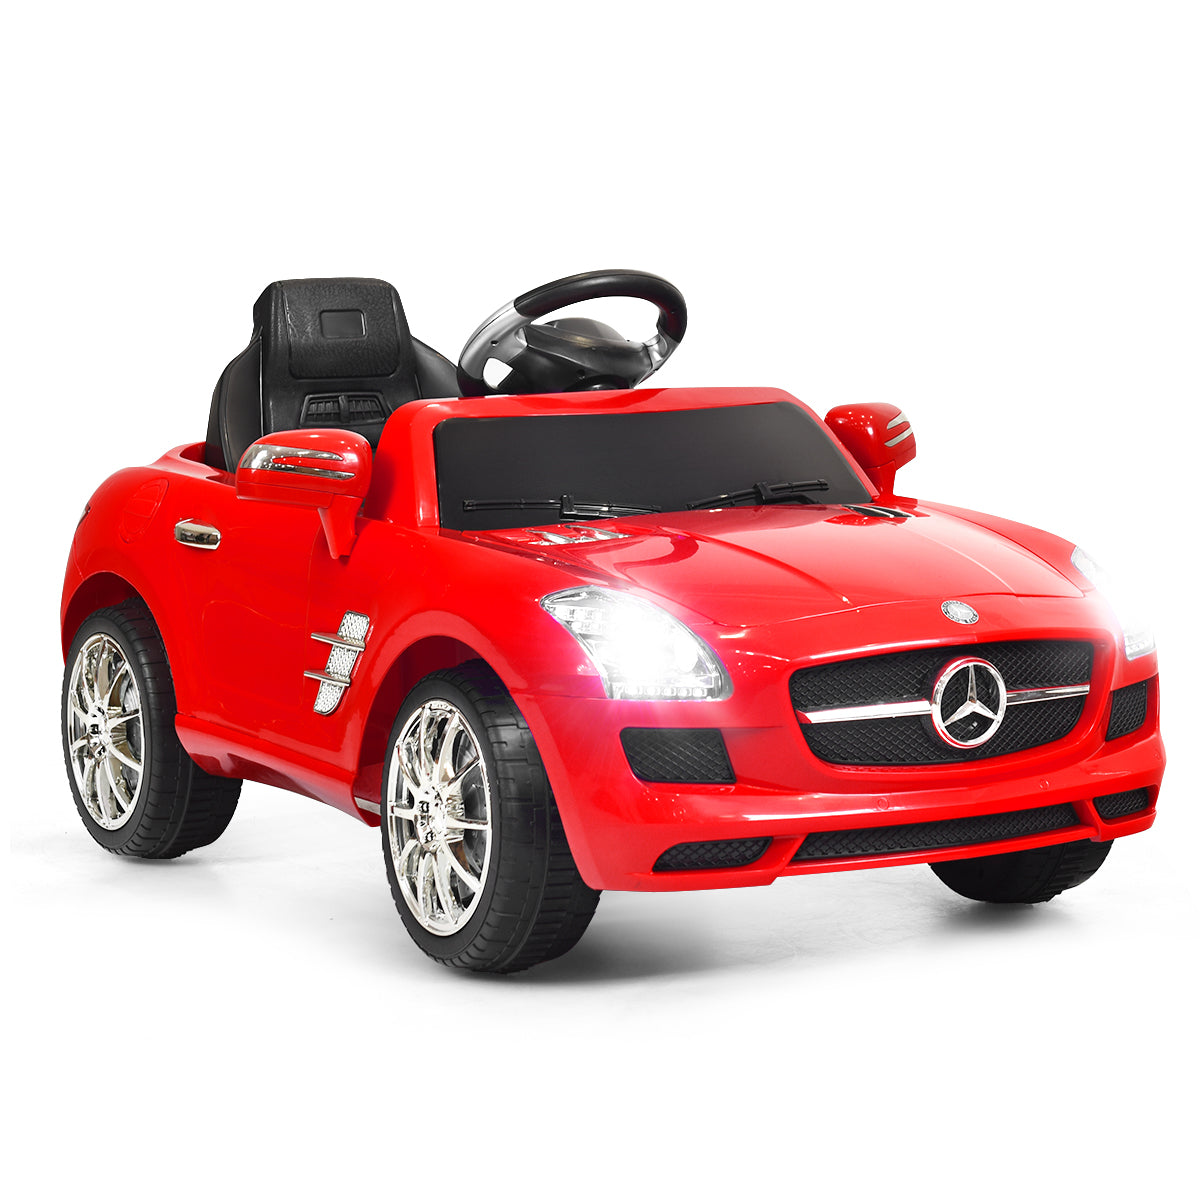 New Red Mercedes Benz sls r/c Mp3 Kids Ride on Car Electric Battery Toy